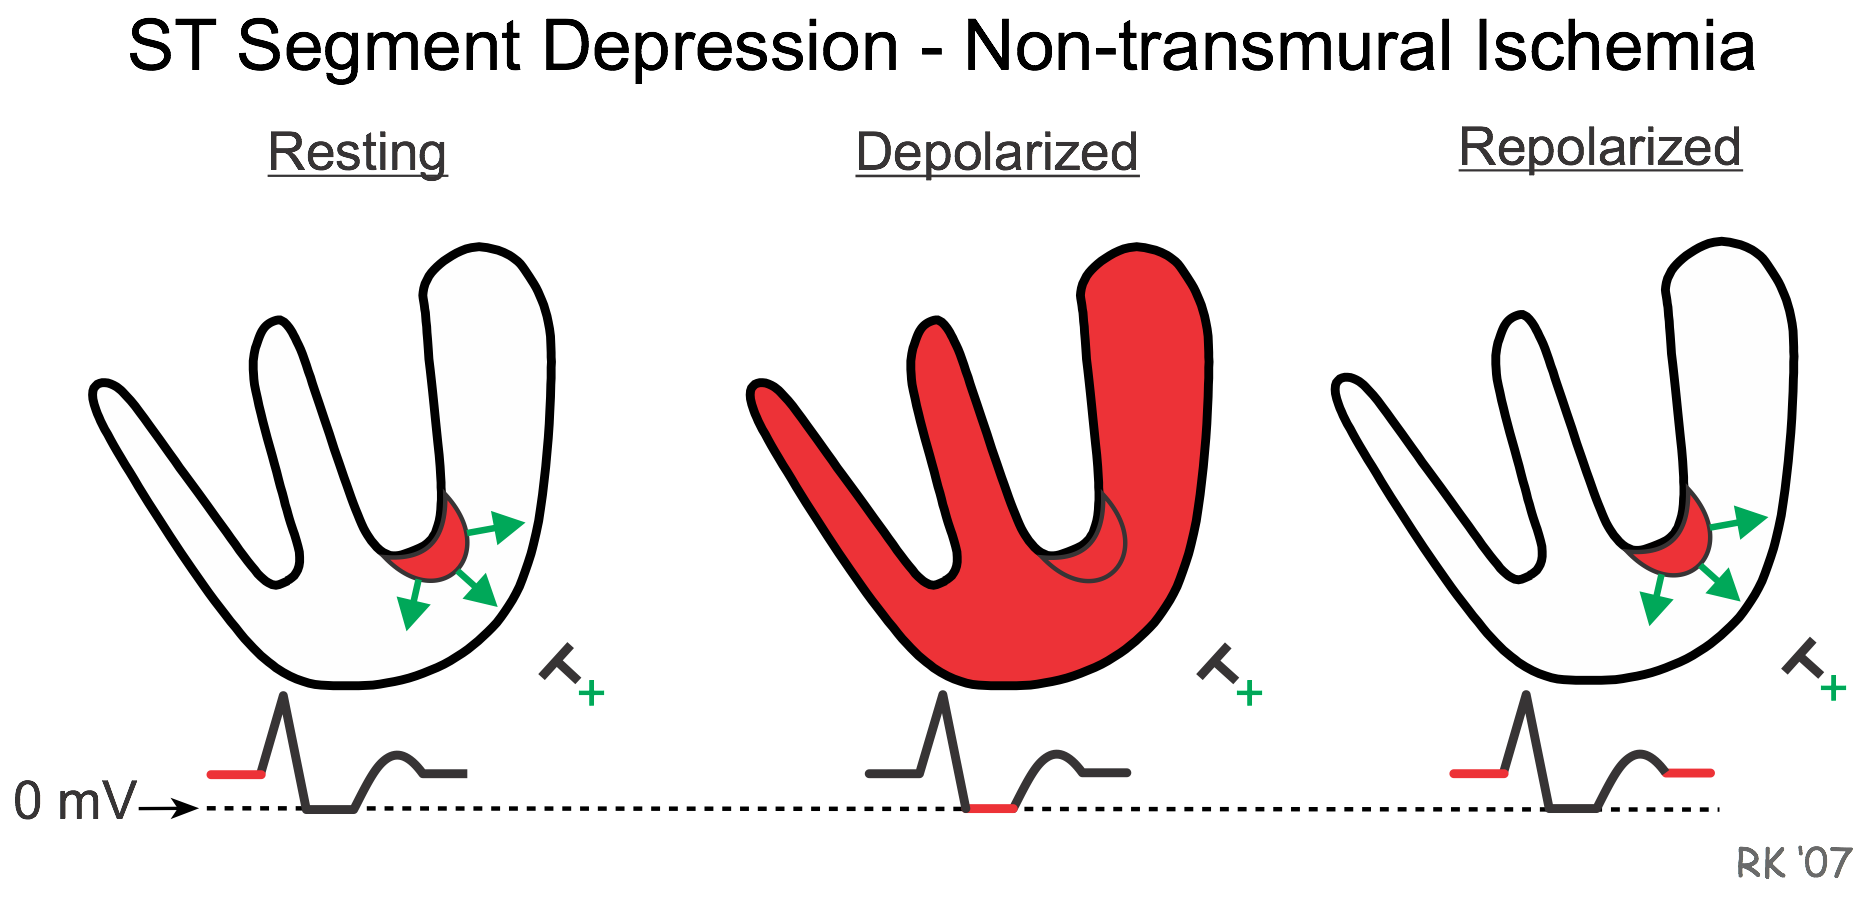 CV Physiology | Electrophysiological Changes During Cardiac Ischemia